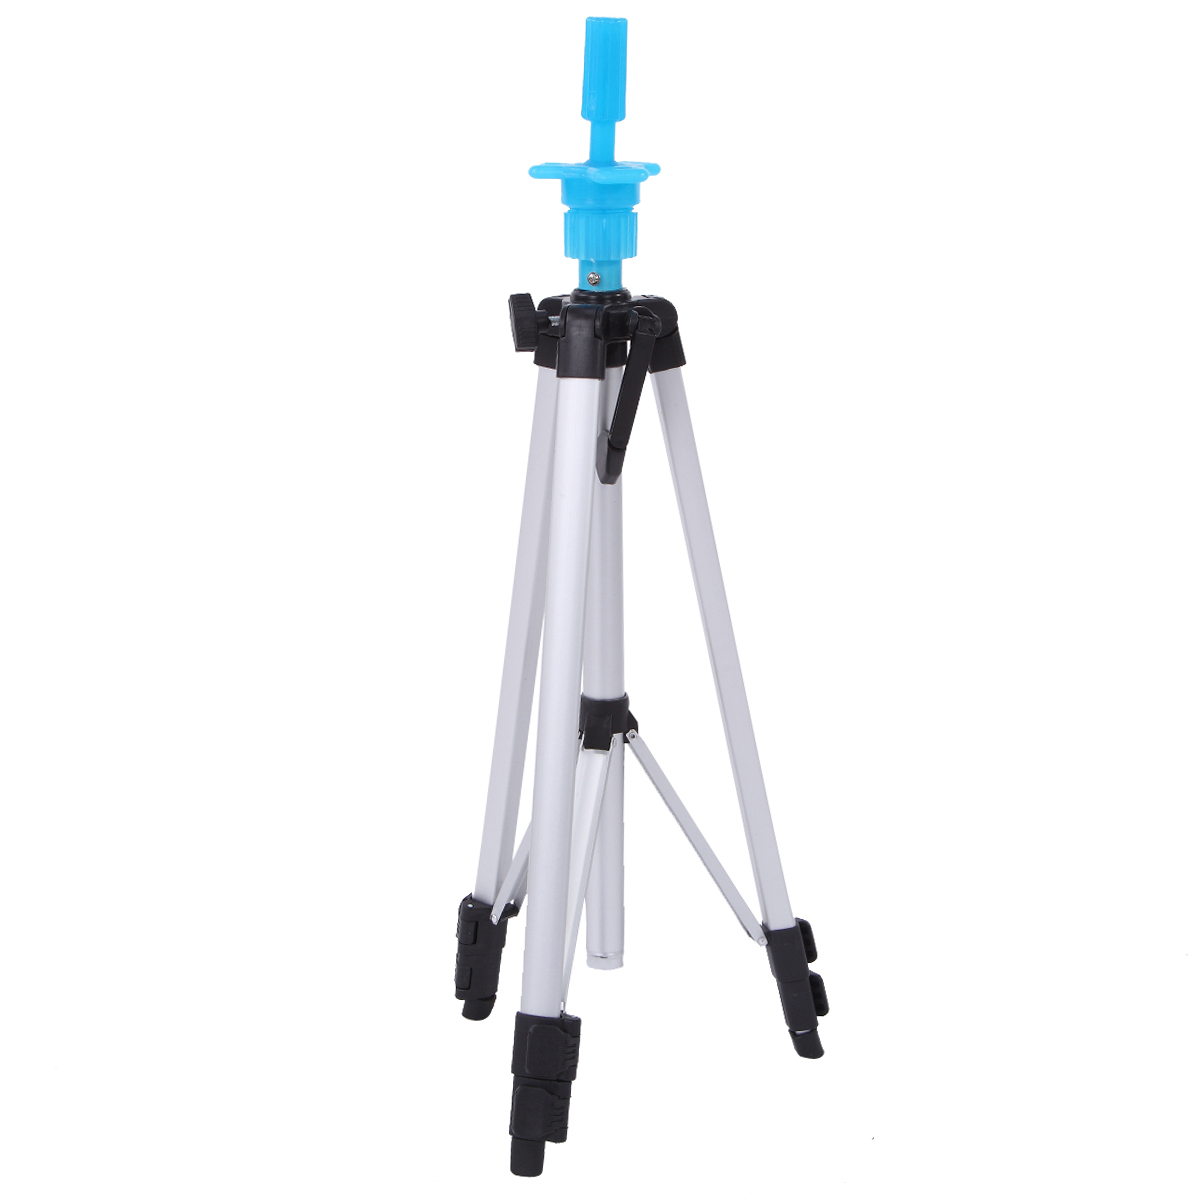 Three Layers Adjustable Tripod Stand Hair Training Mannequin Head Holder Clamp Aluminum Practice Showed Prop Salon Styling Tools